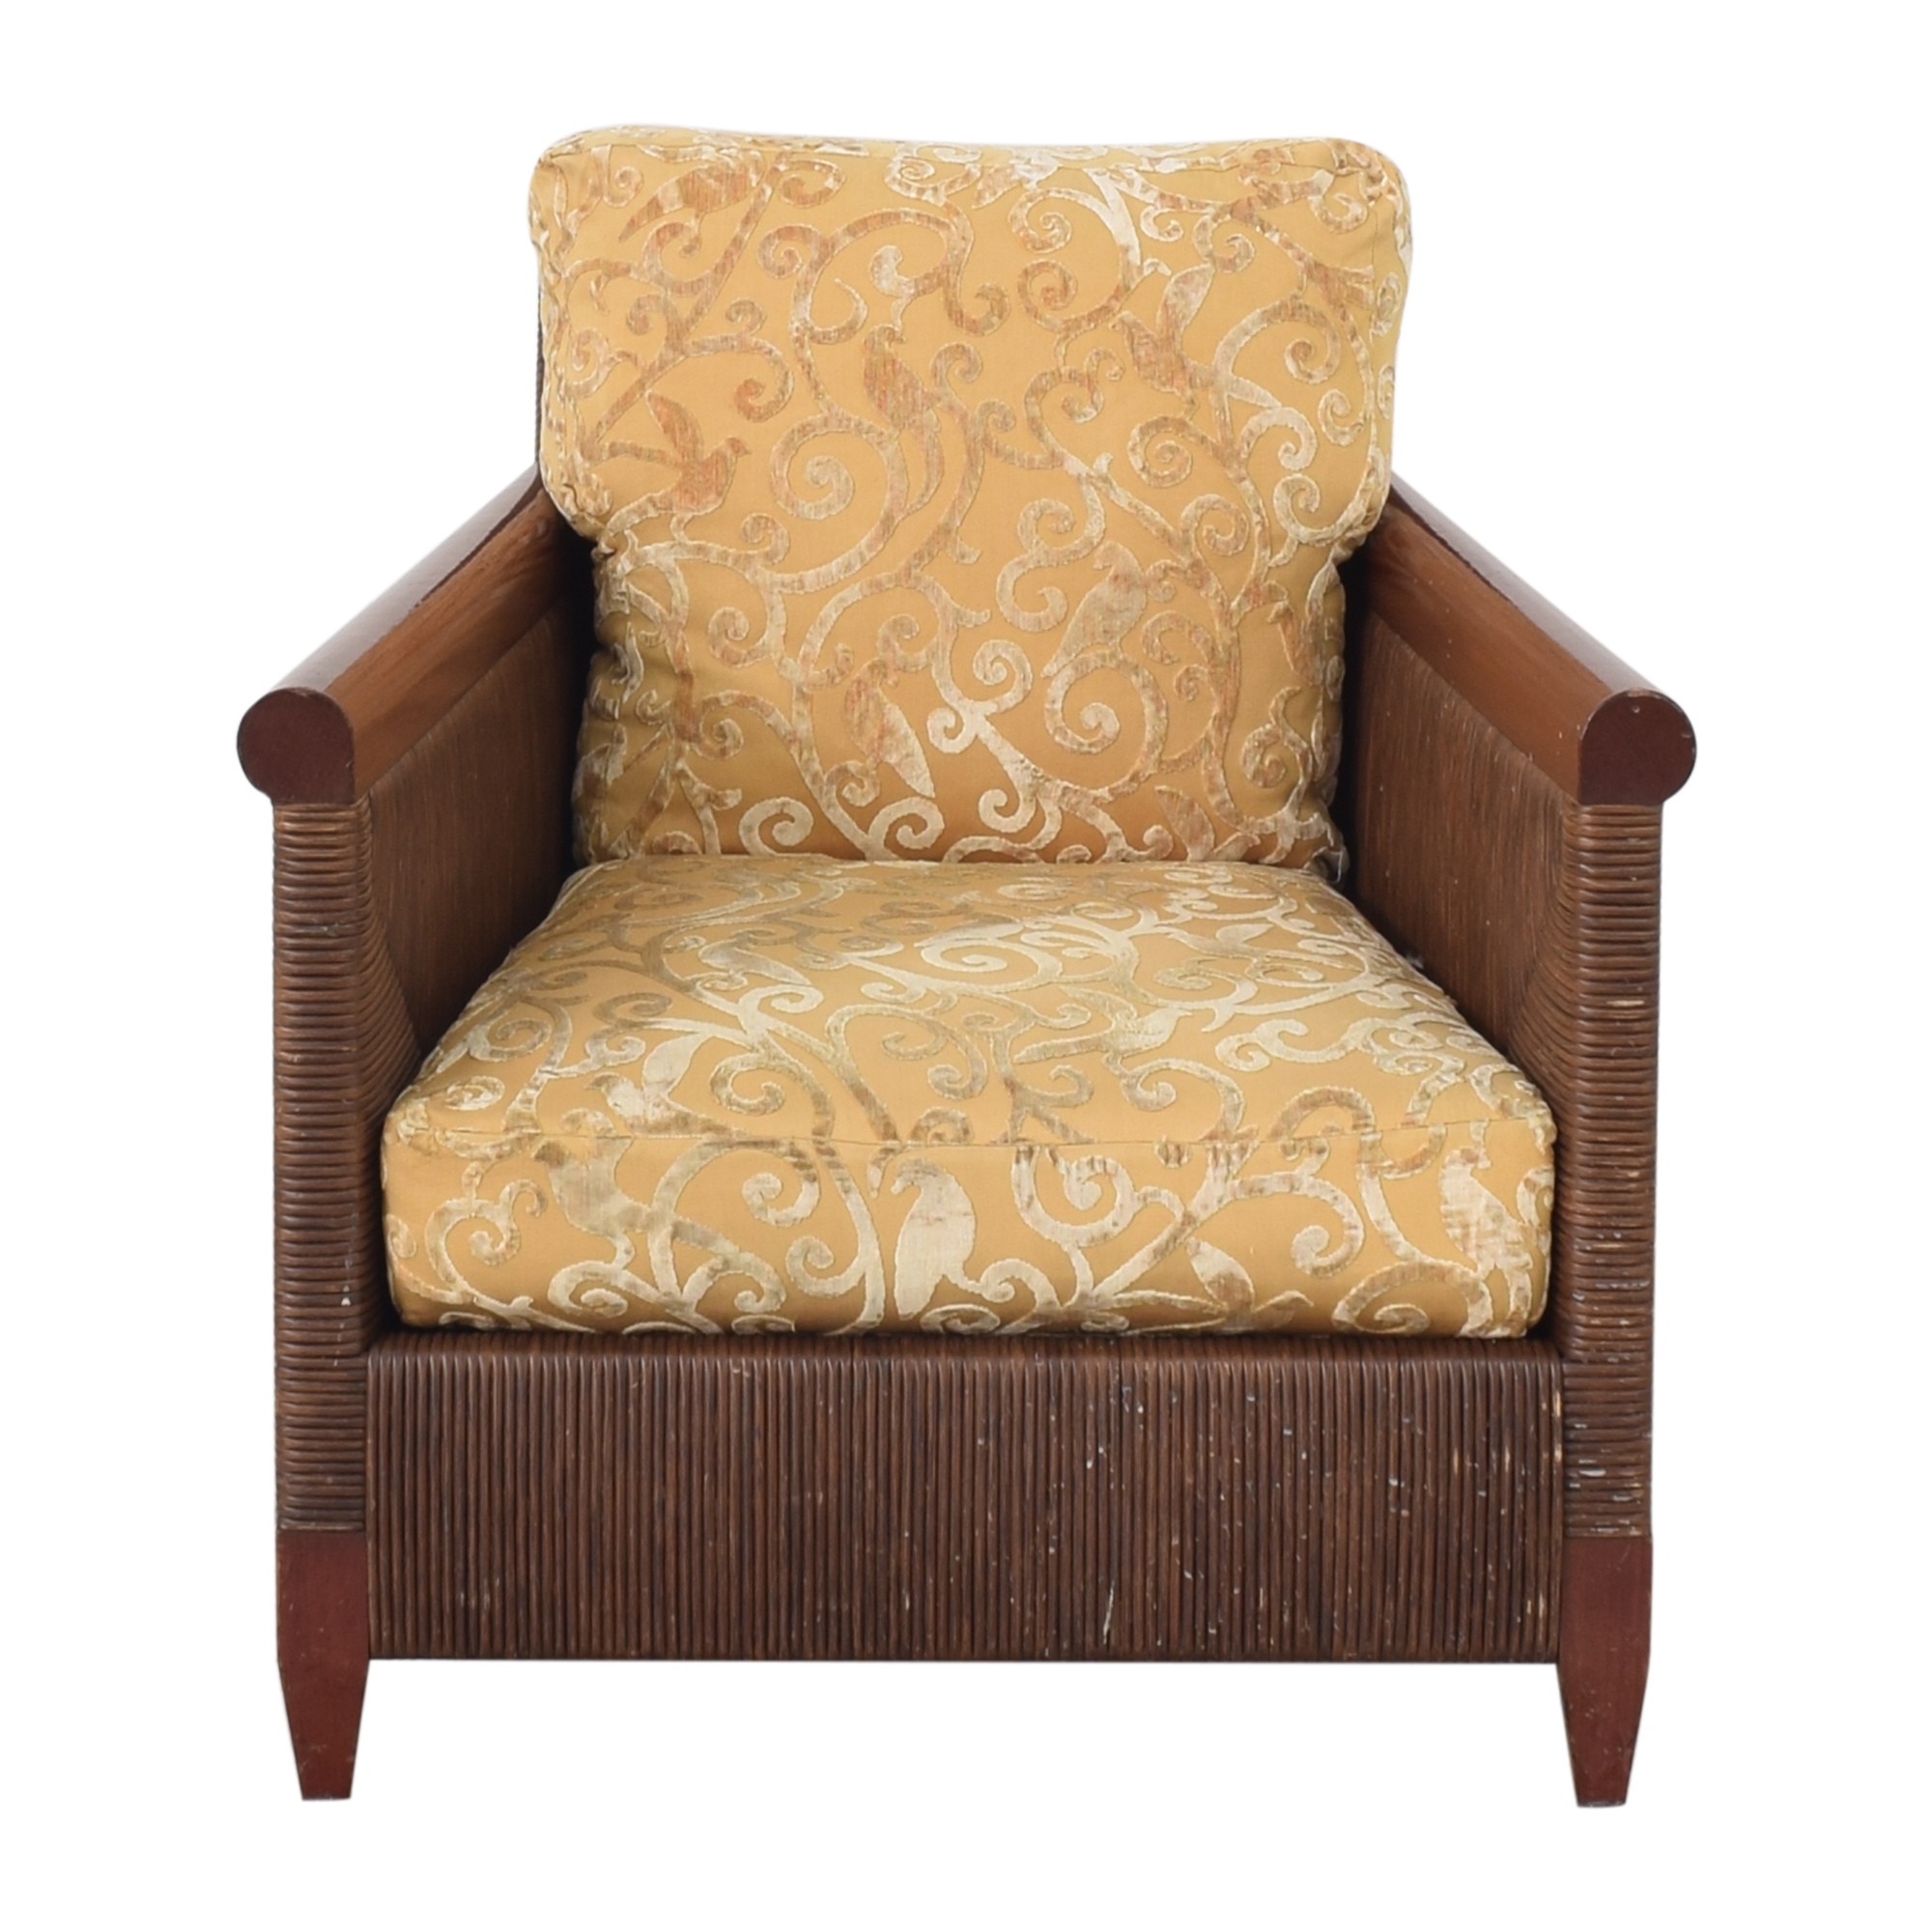 Donghia Donghia by John Hutton Mahogany and Wicker Lounger second hand